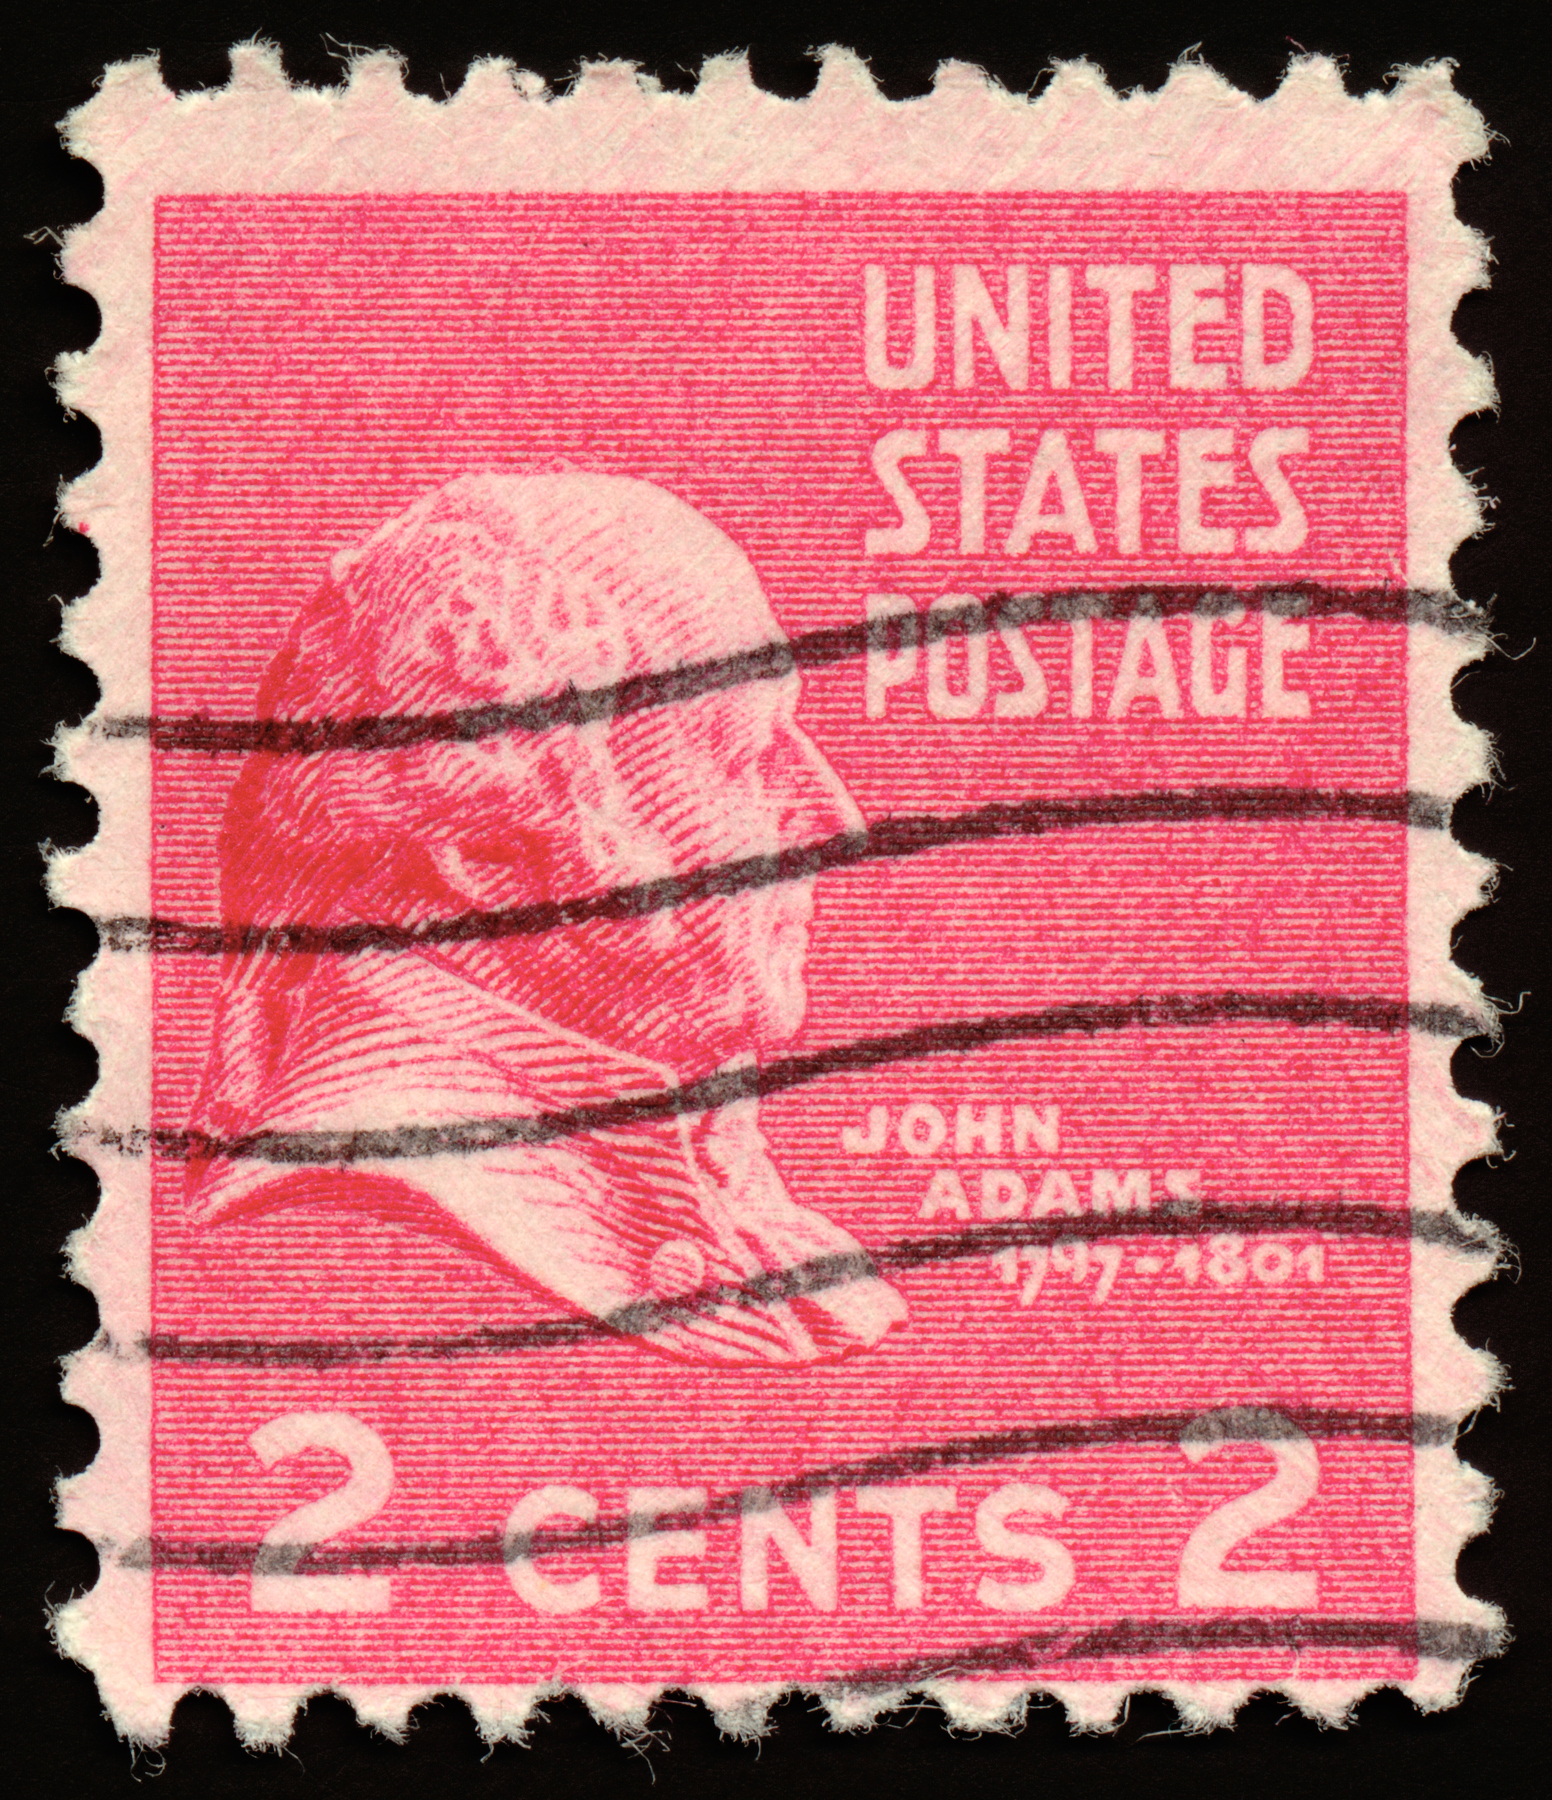 Pink john adams stamp photo